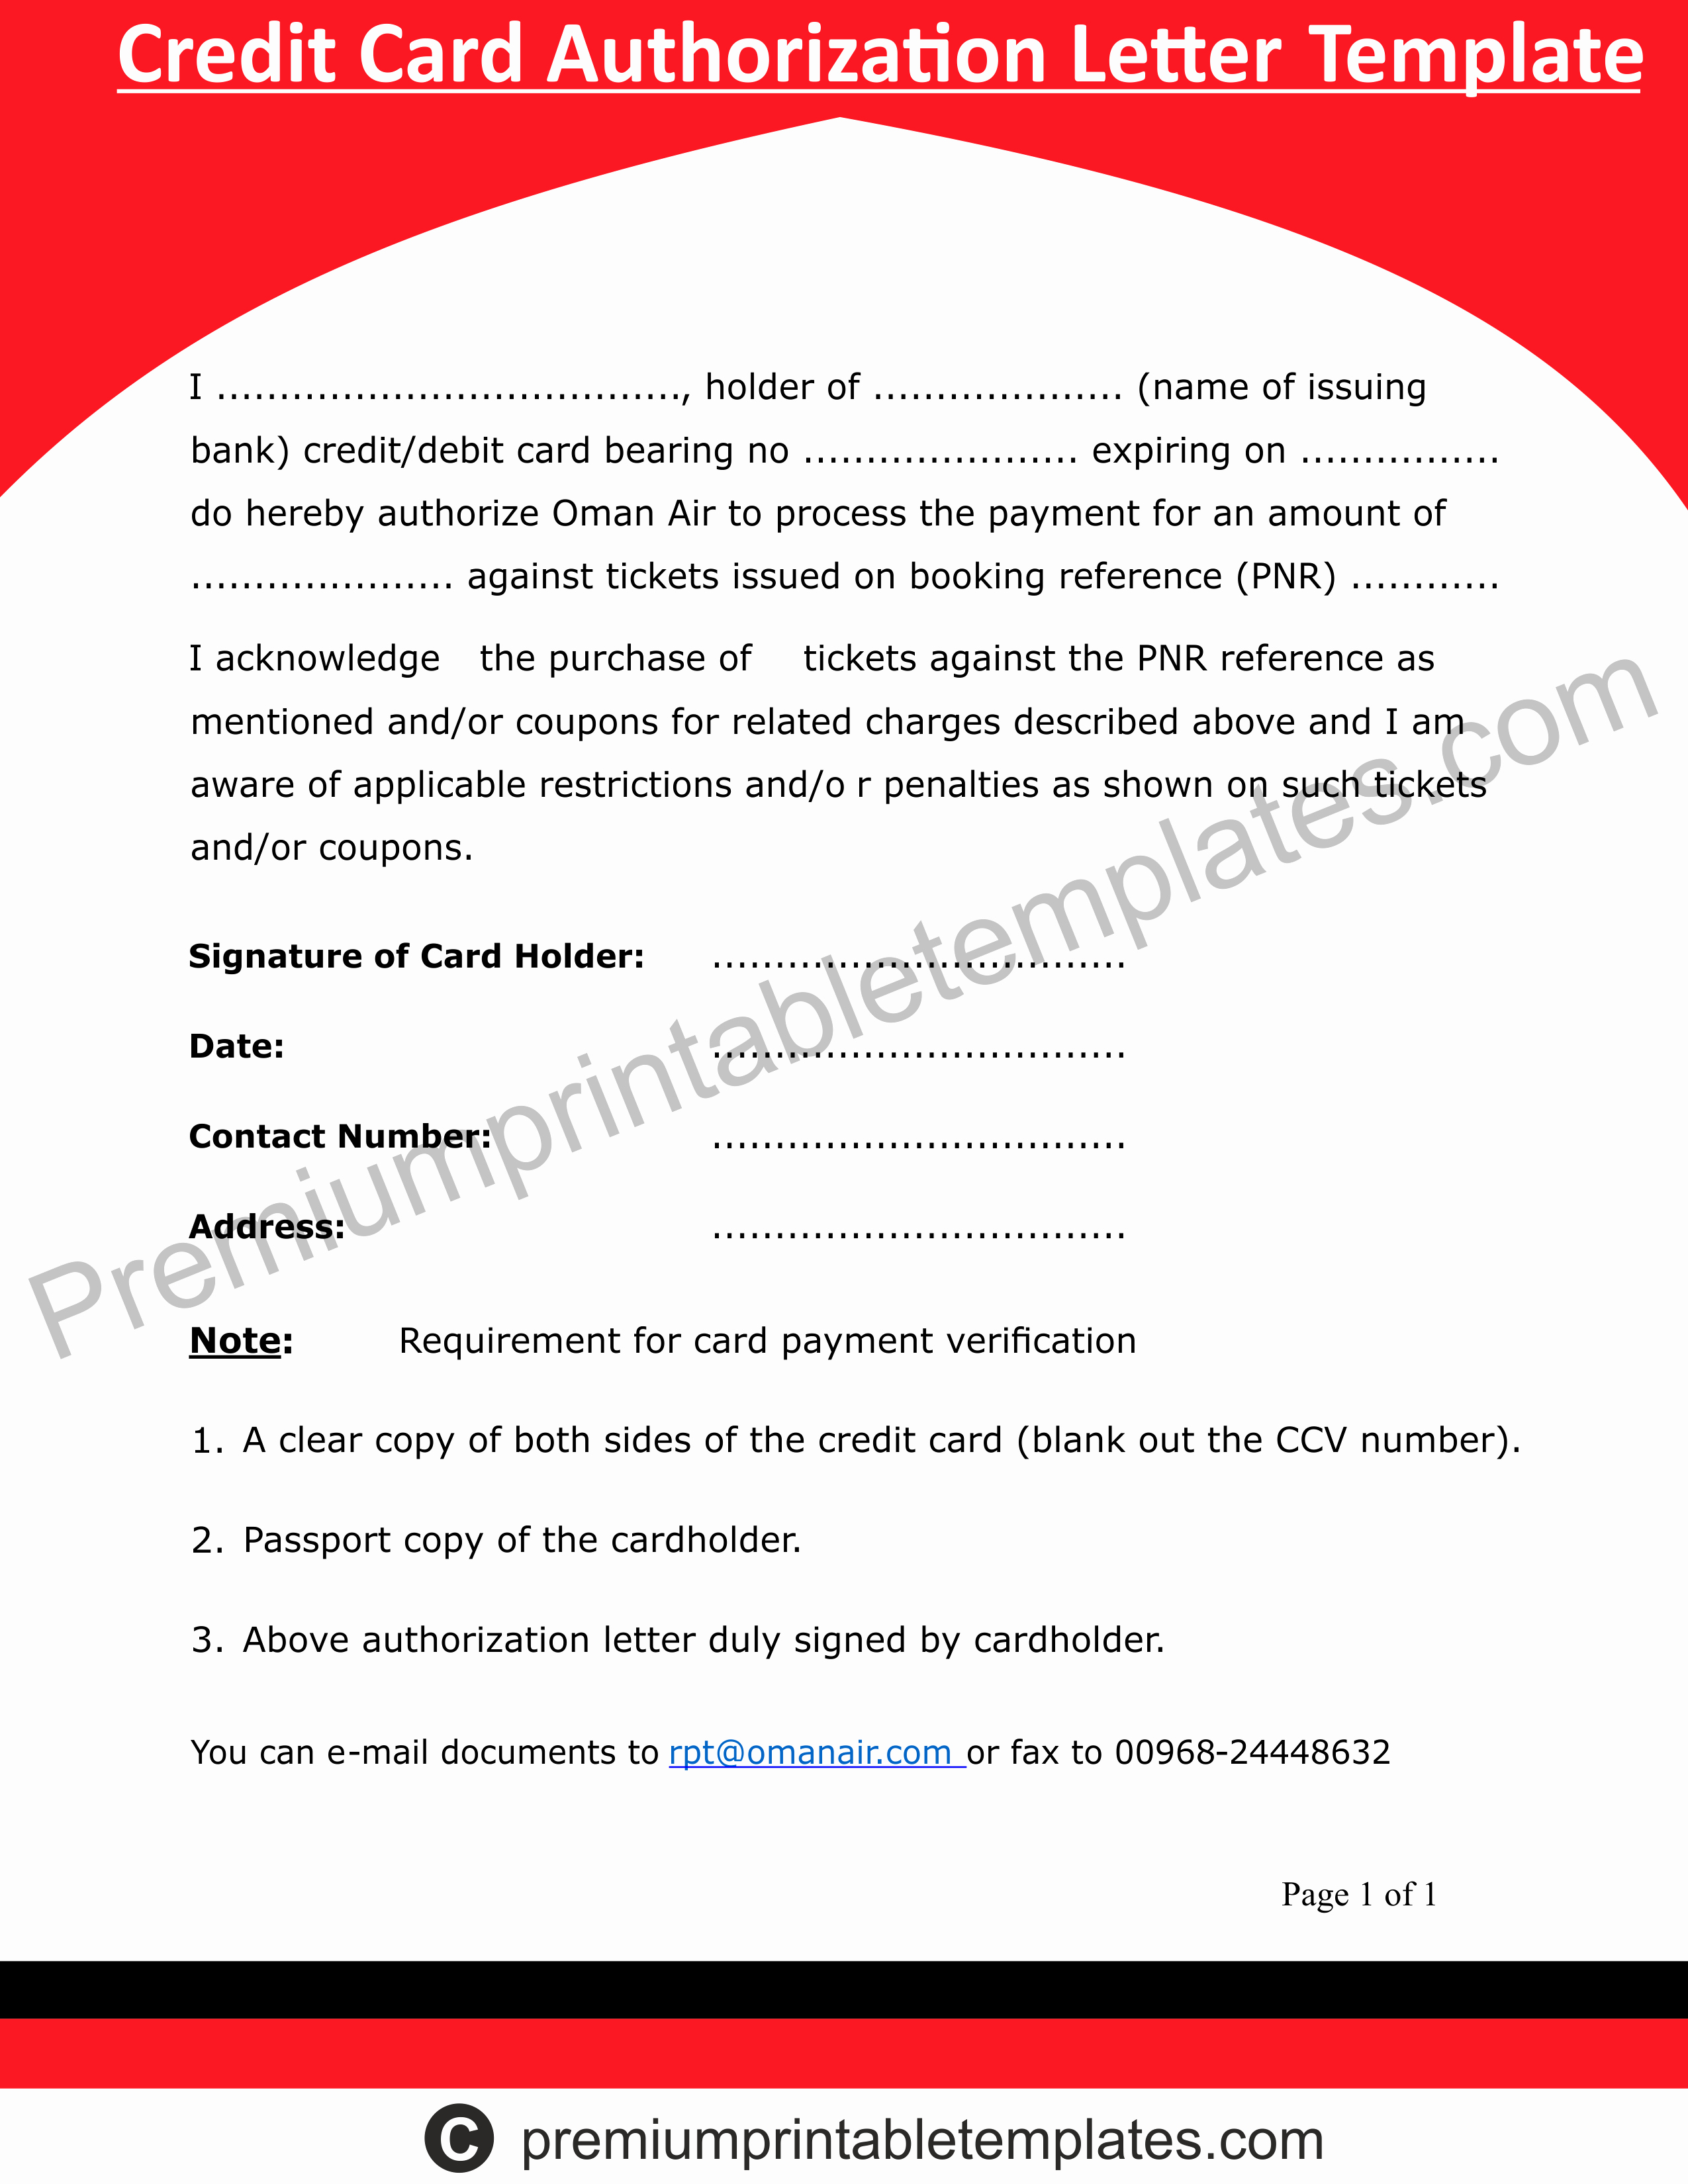 Credit Card Authorization Letter Template New Credit Card Authorization Letter Templates – Premium